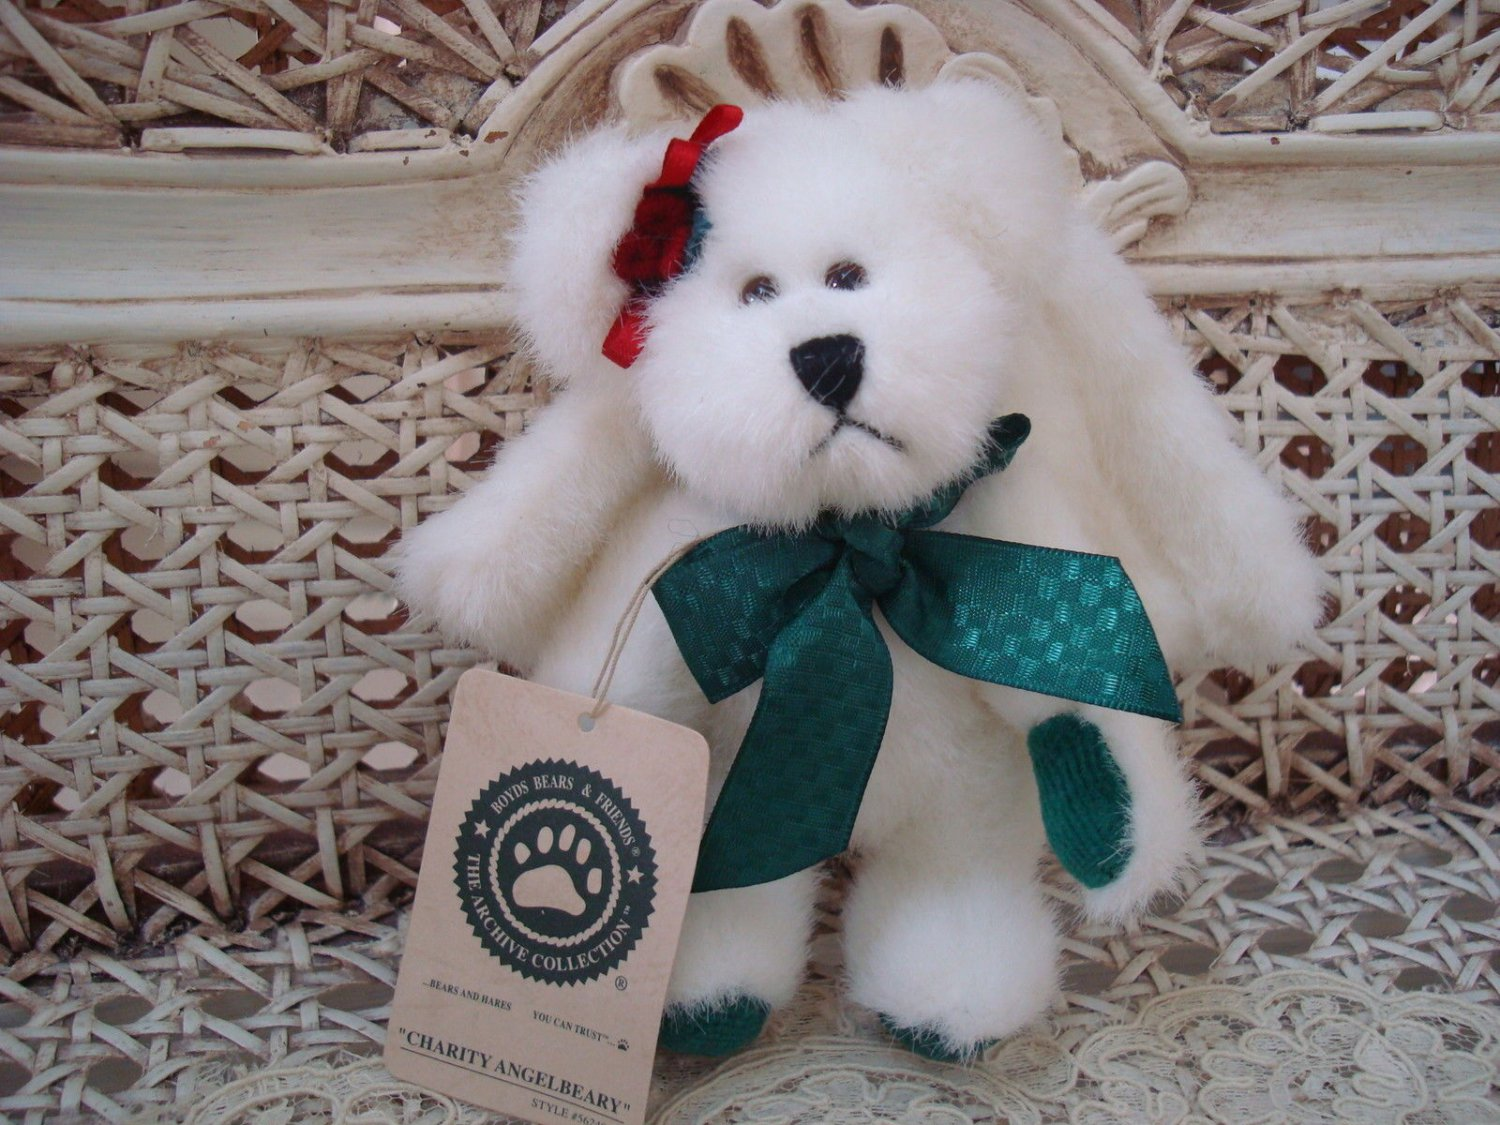 """BOYDS CHARITY ANGELBEARY 5 1/2"""" ANGEL BEAR ORNAMENT *NEW STORE STOCK*"""